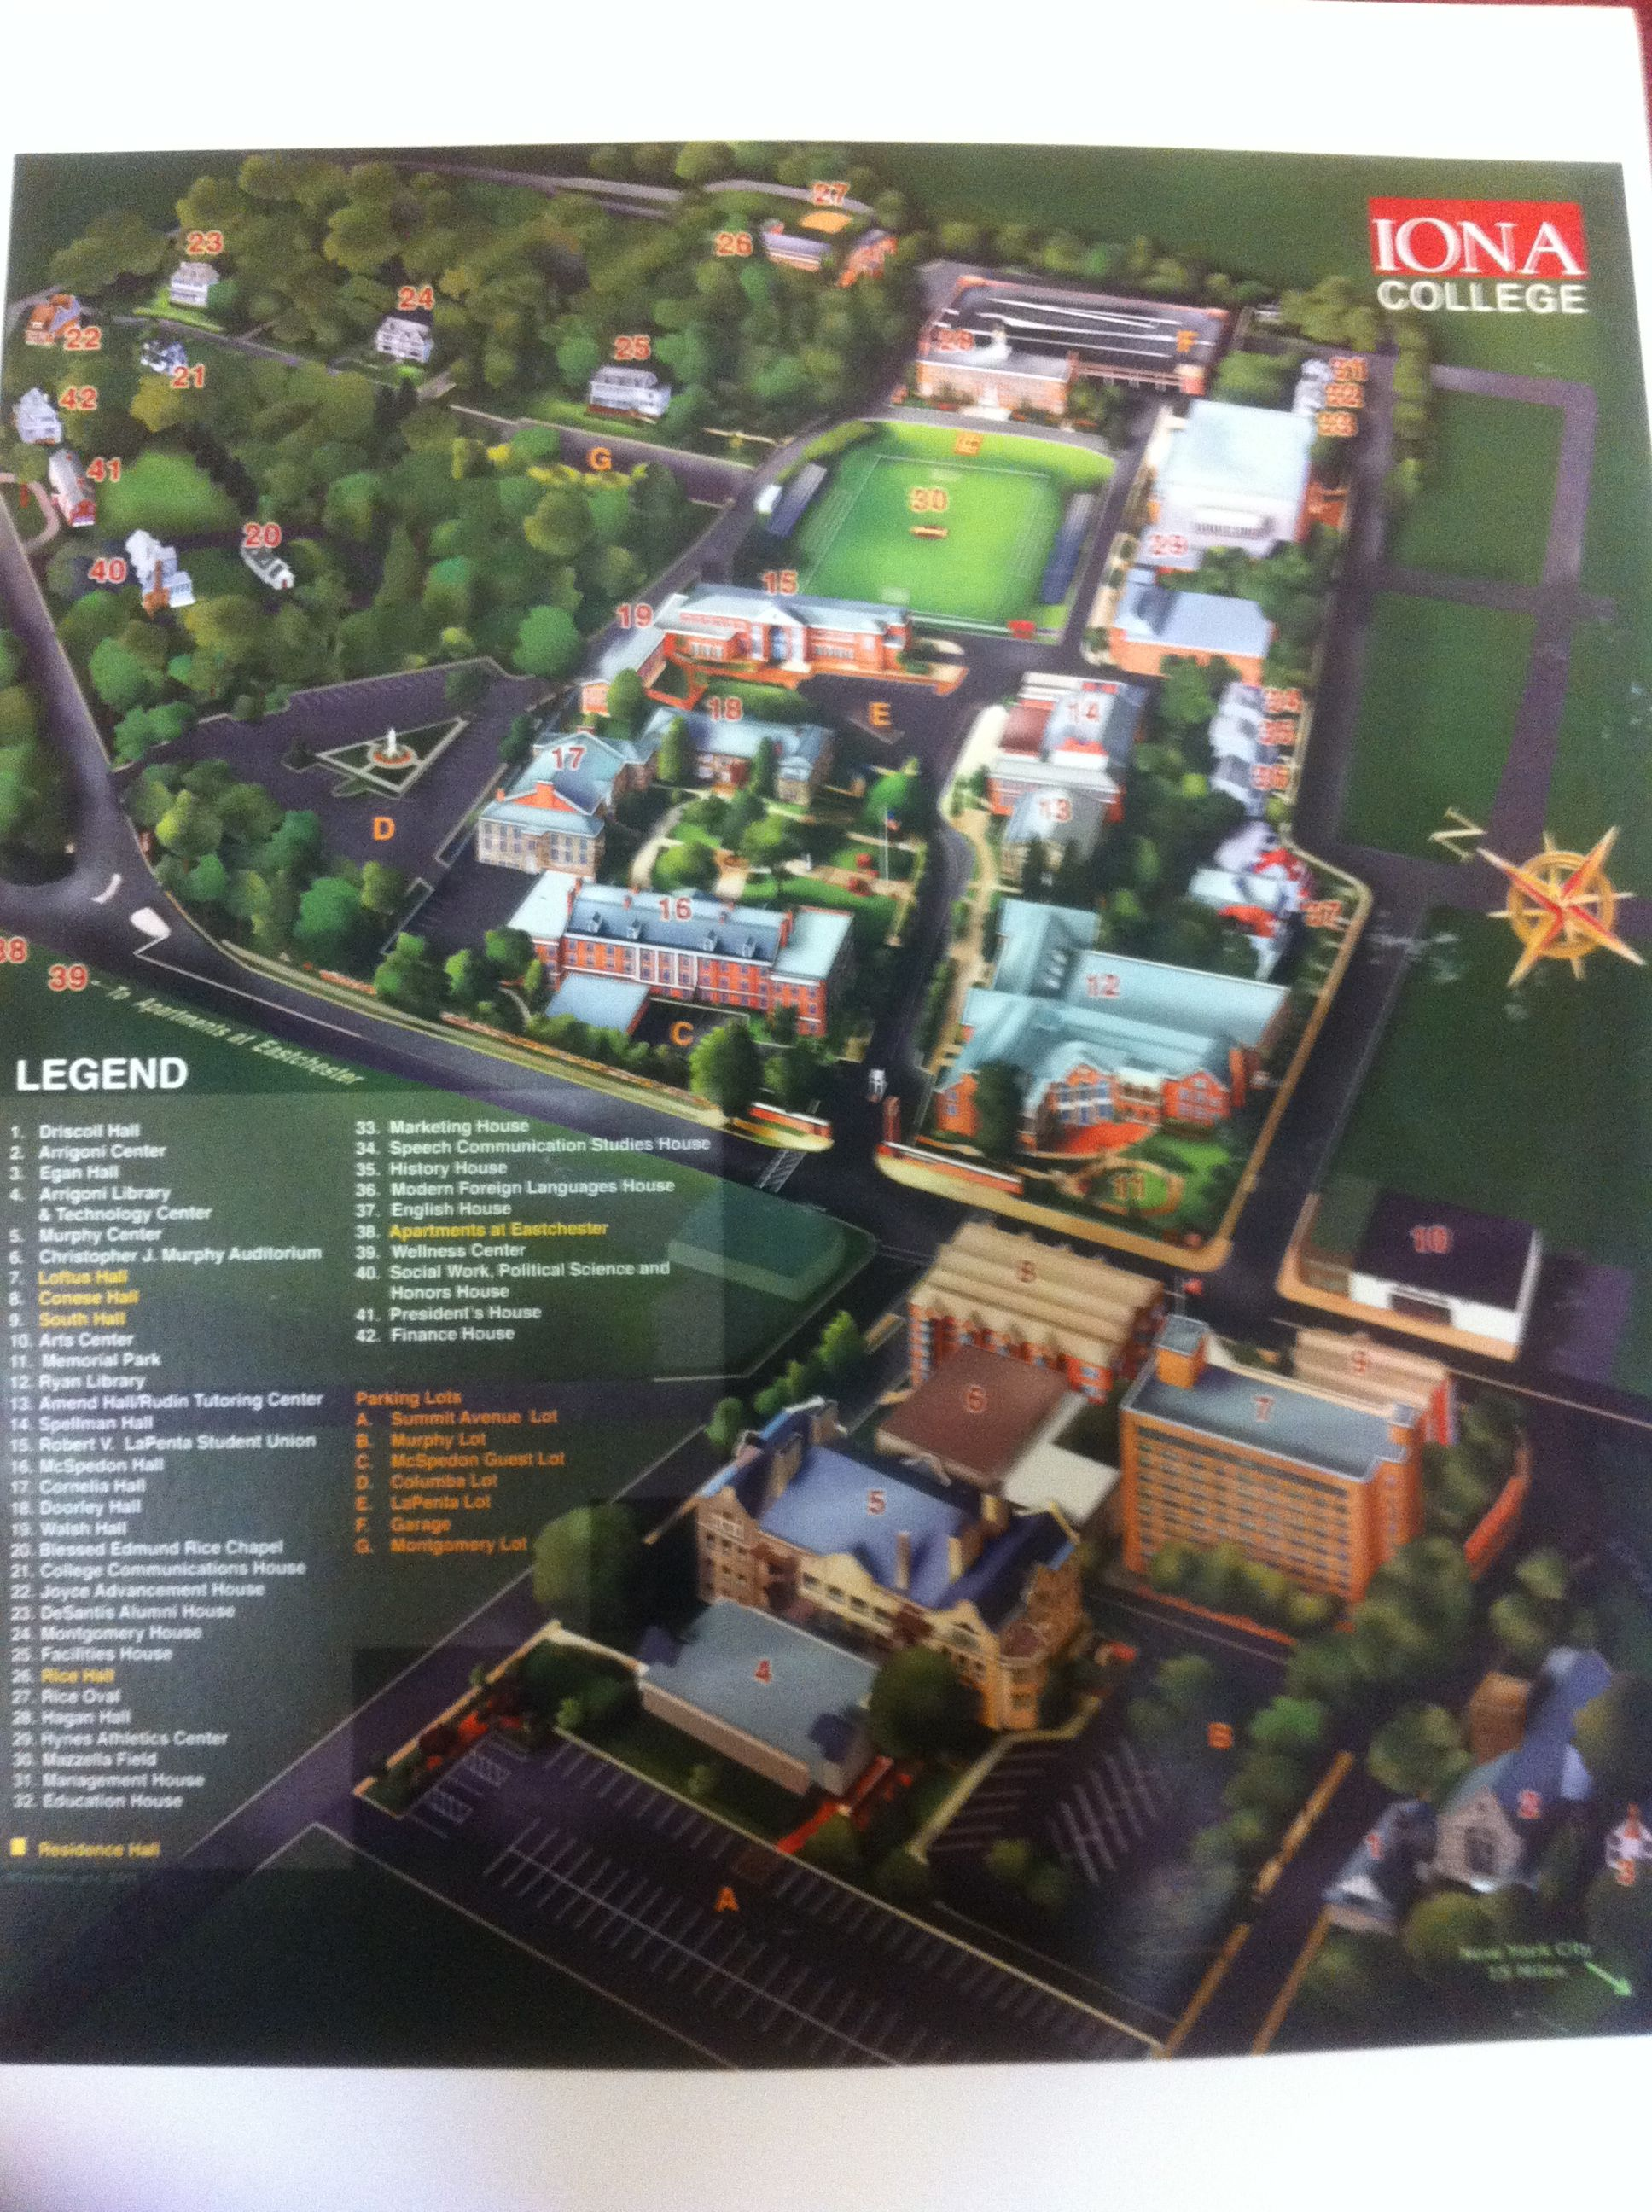 iona college campus map Become Acquainted With Iona S Campus Right Here Just Click On iona college campus map